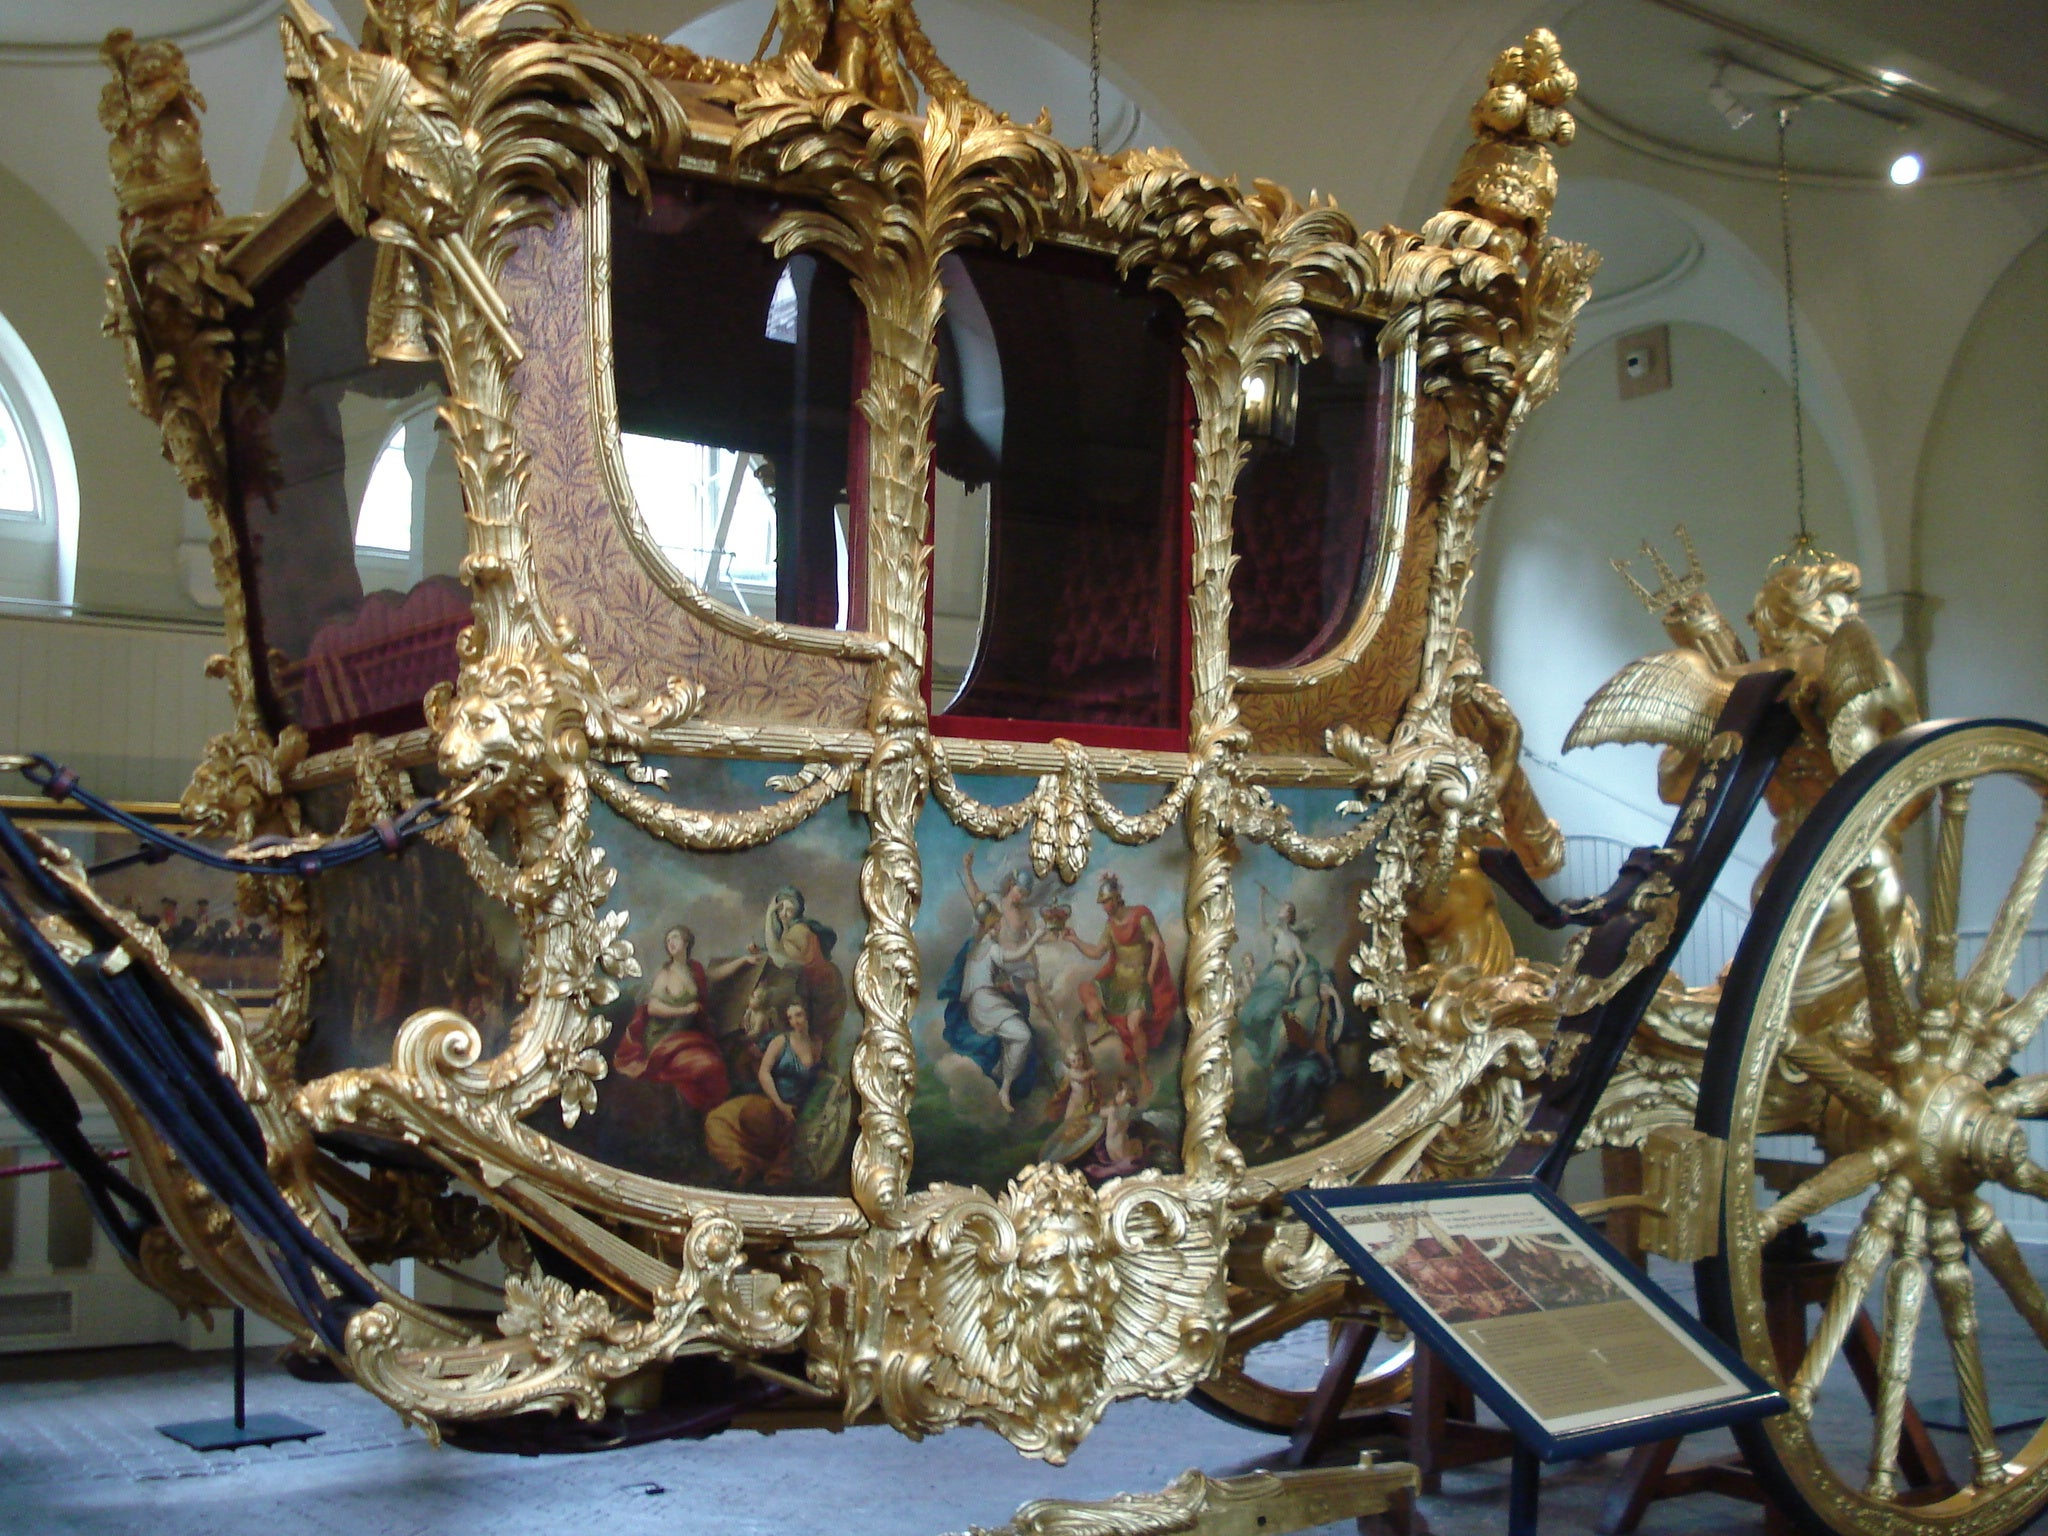 Historia antigua en Royal Mews